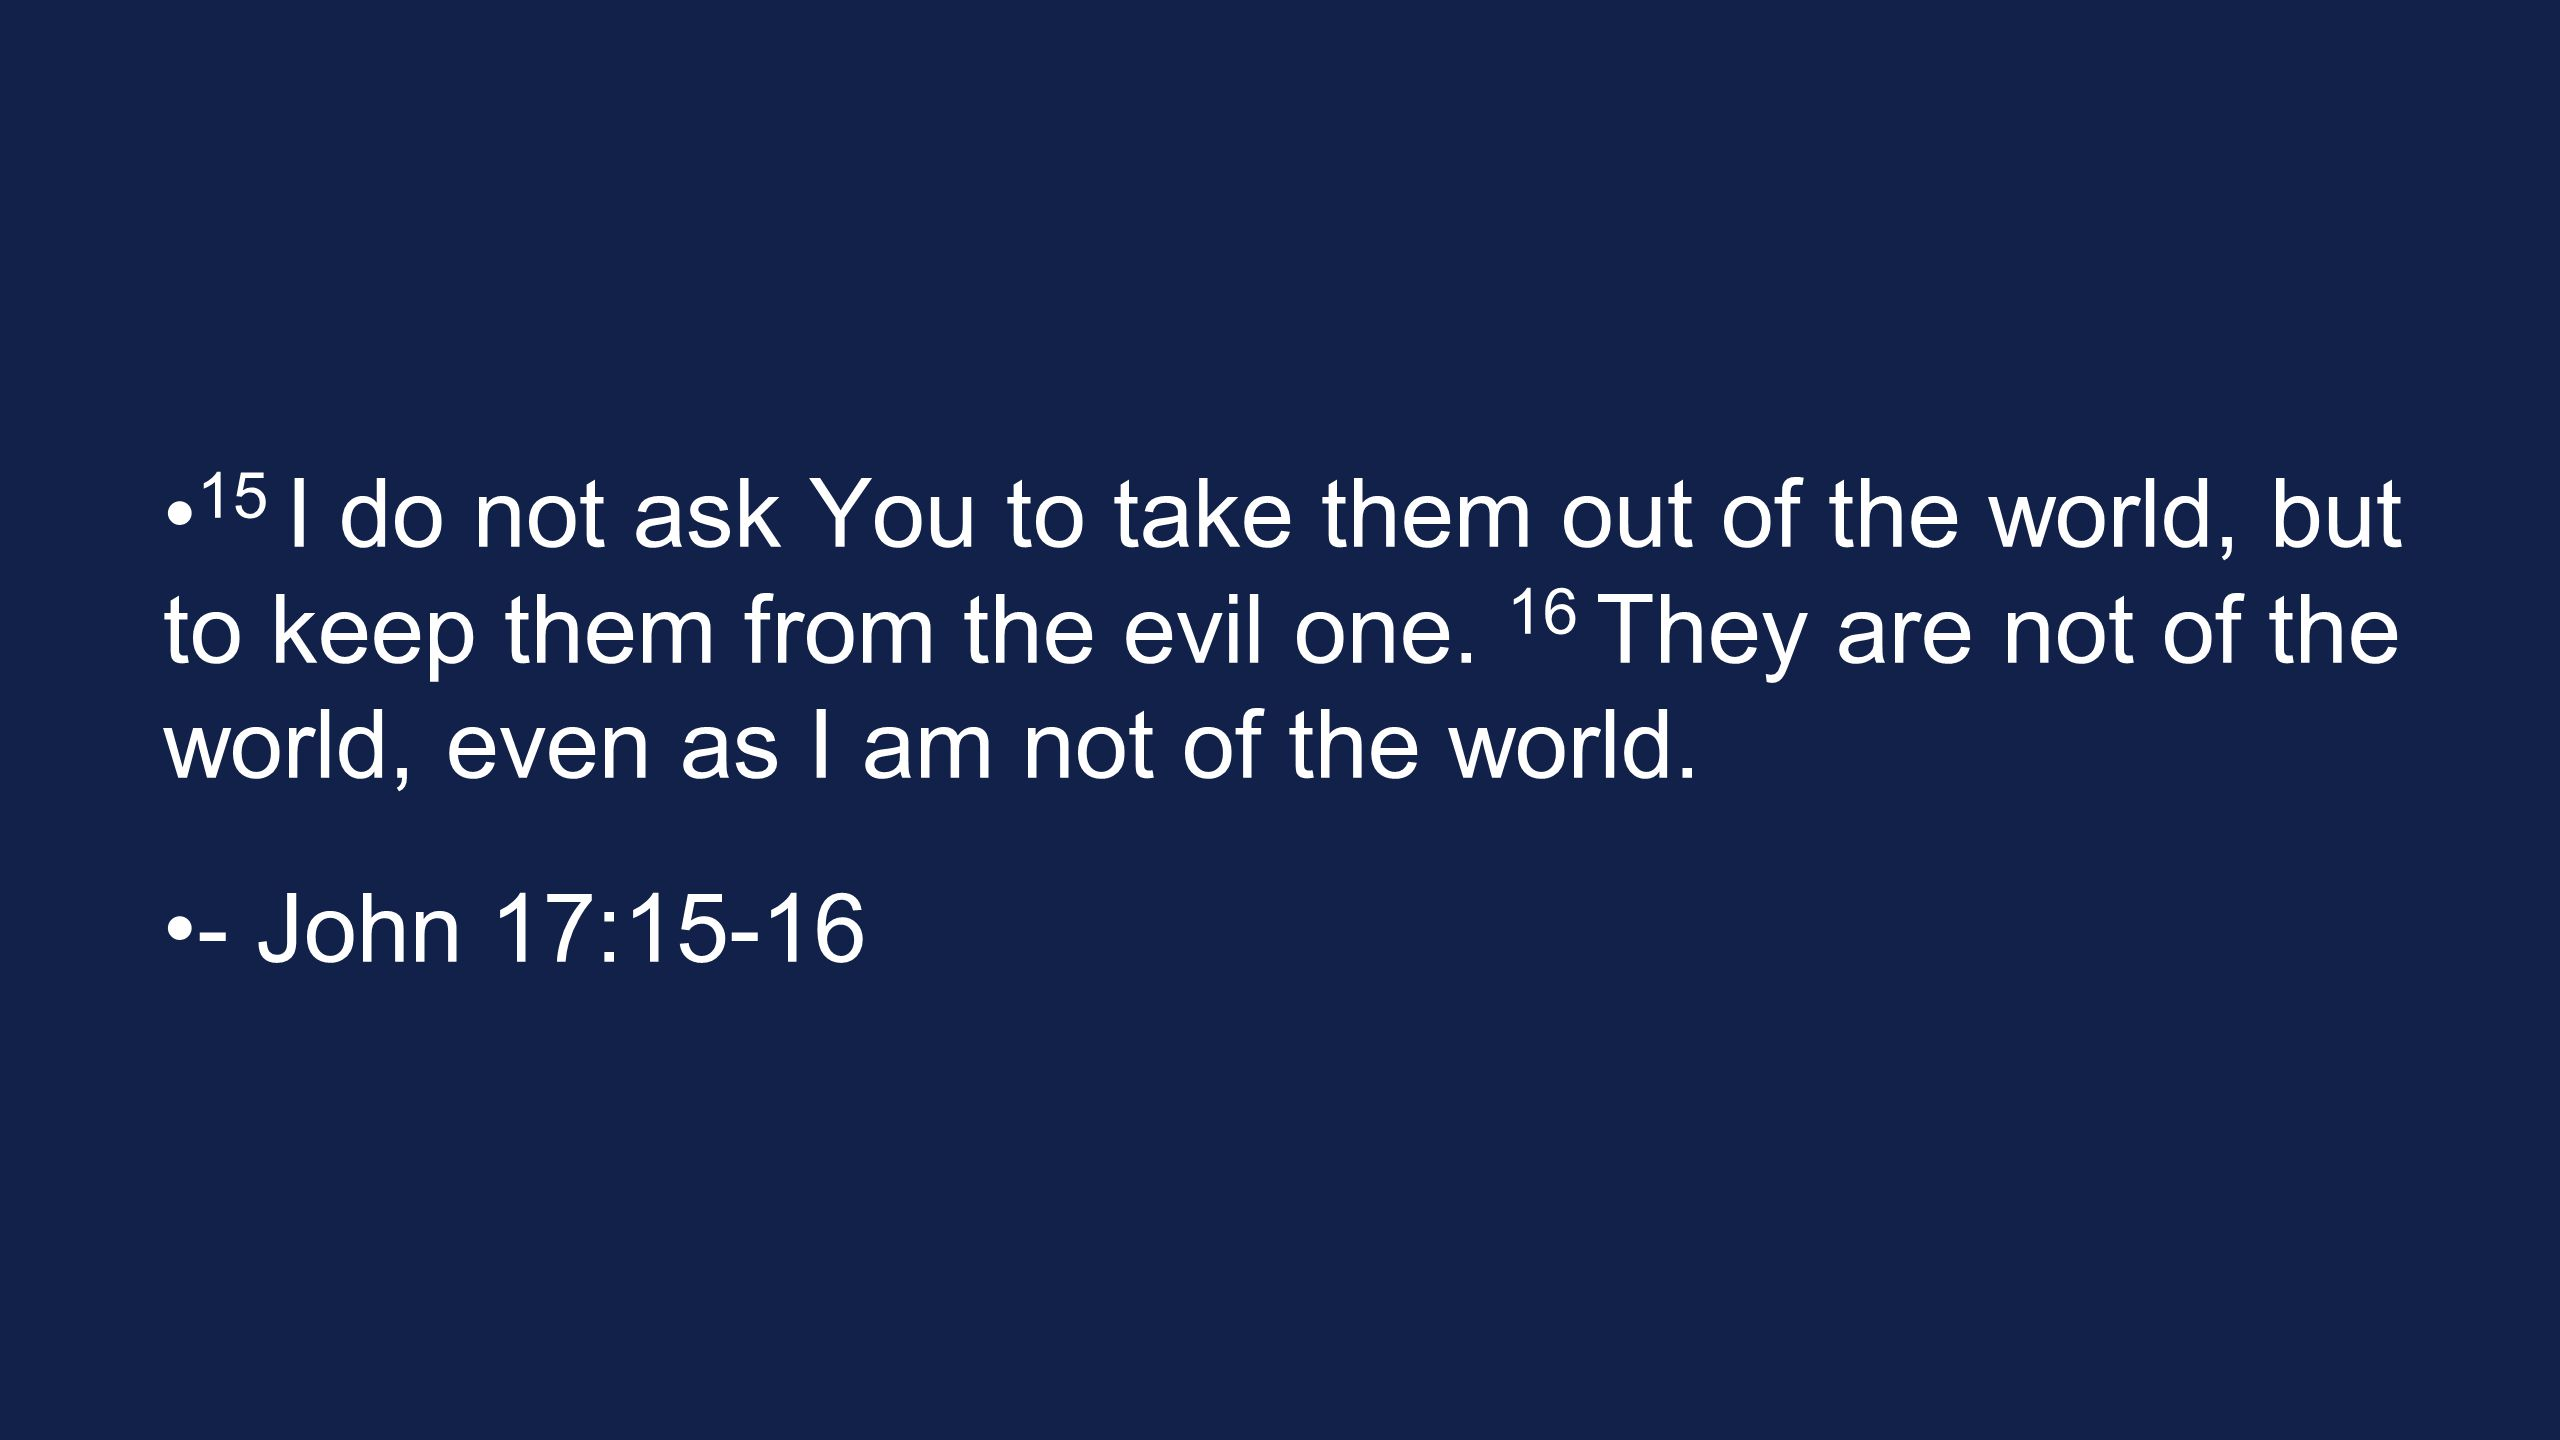 15 I do not ask You to take them out of the world, but to keep them from the evil one. 16 They are not of the world, even as I am not of the world.